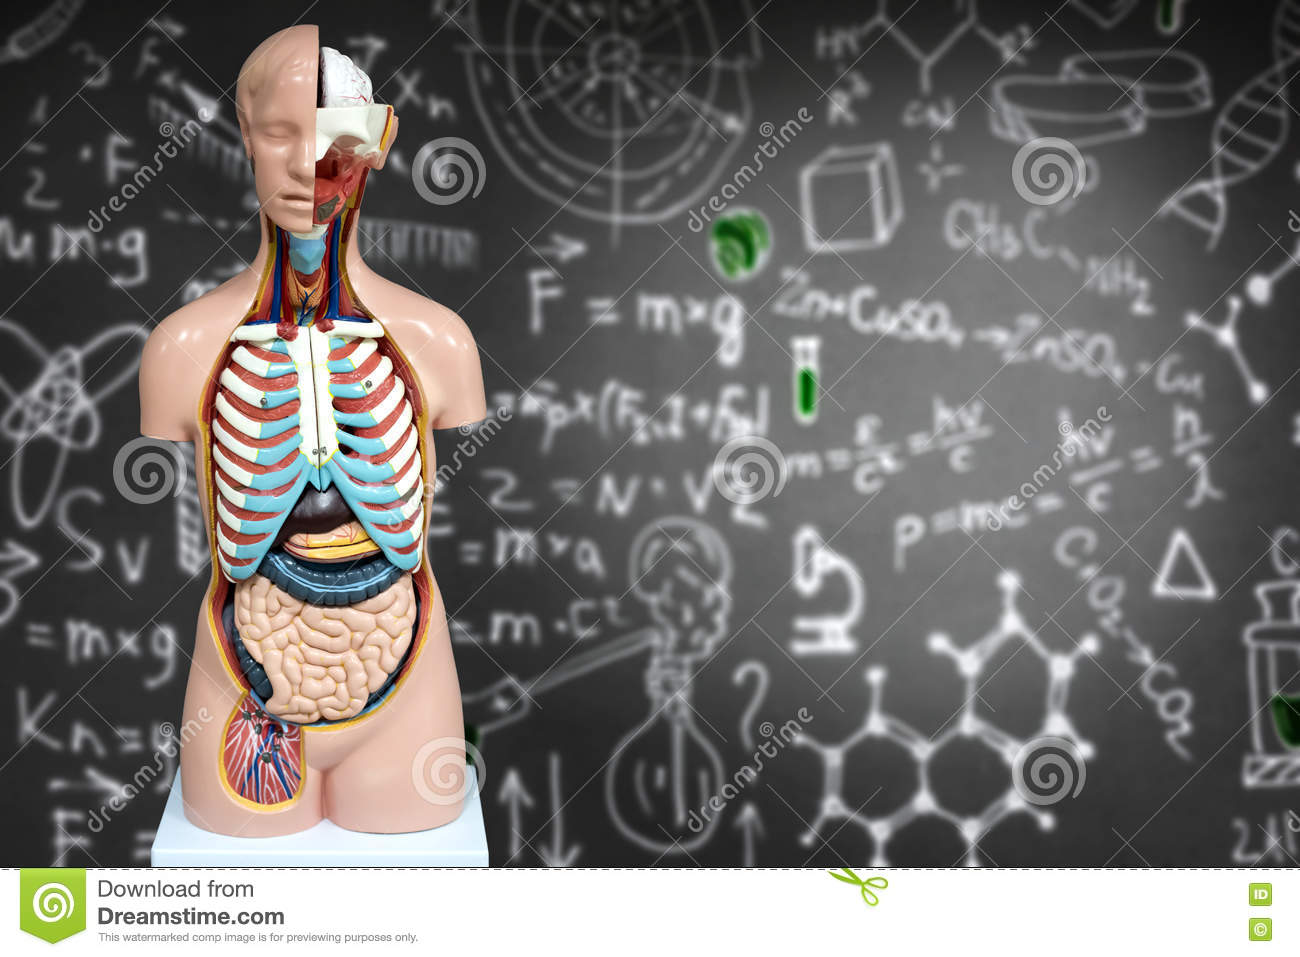 Human Anatomy Mannequin On The Background Of Chemical Formulas Stock